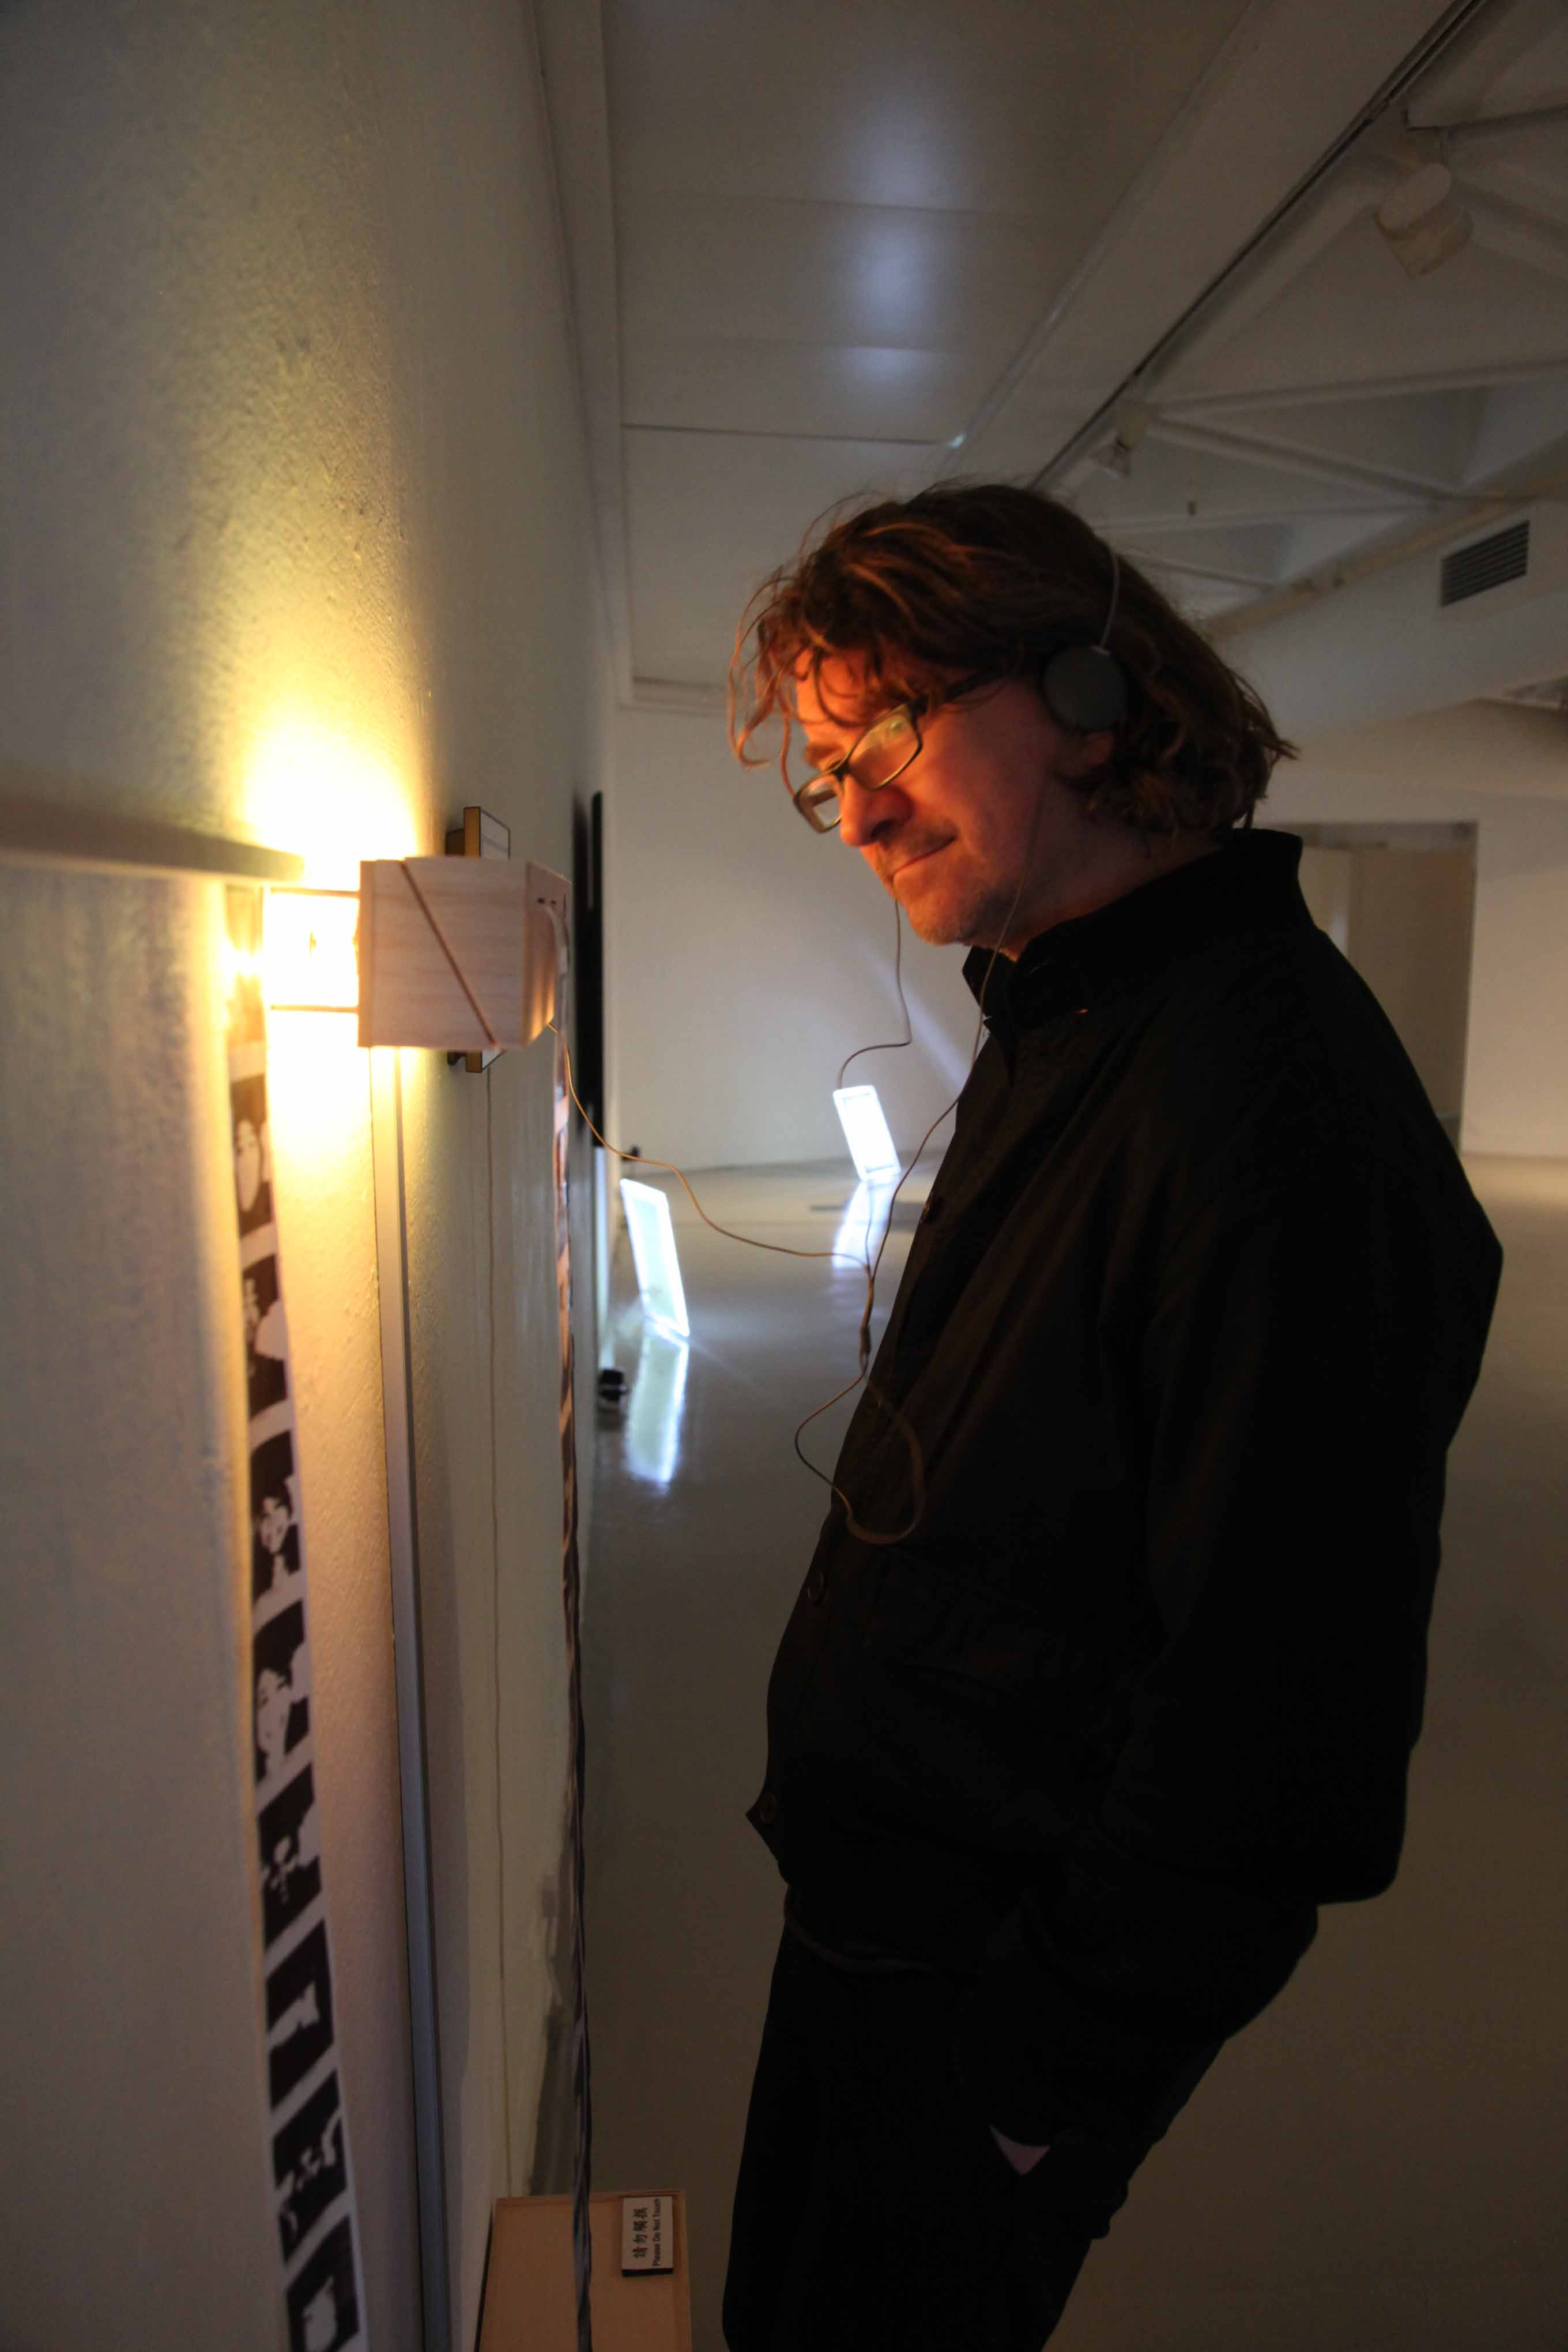 Kevin McCoy participated in one of the finalist work, <i>Time Axis</i>